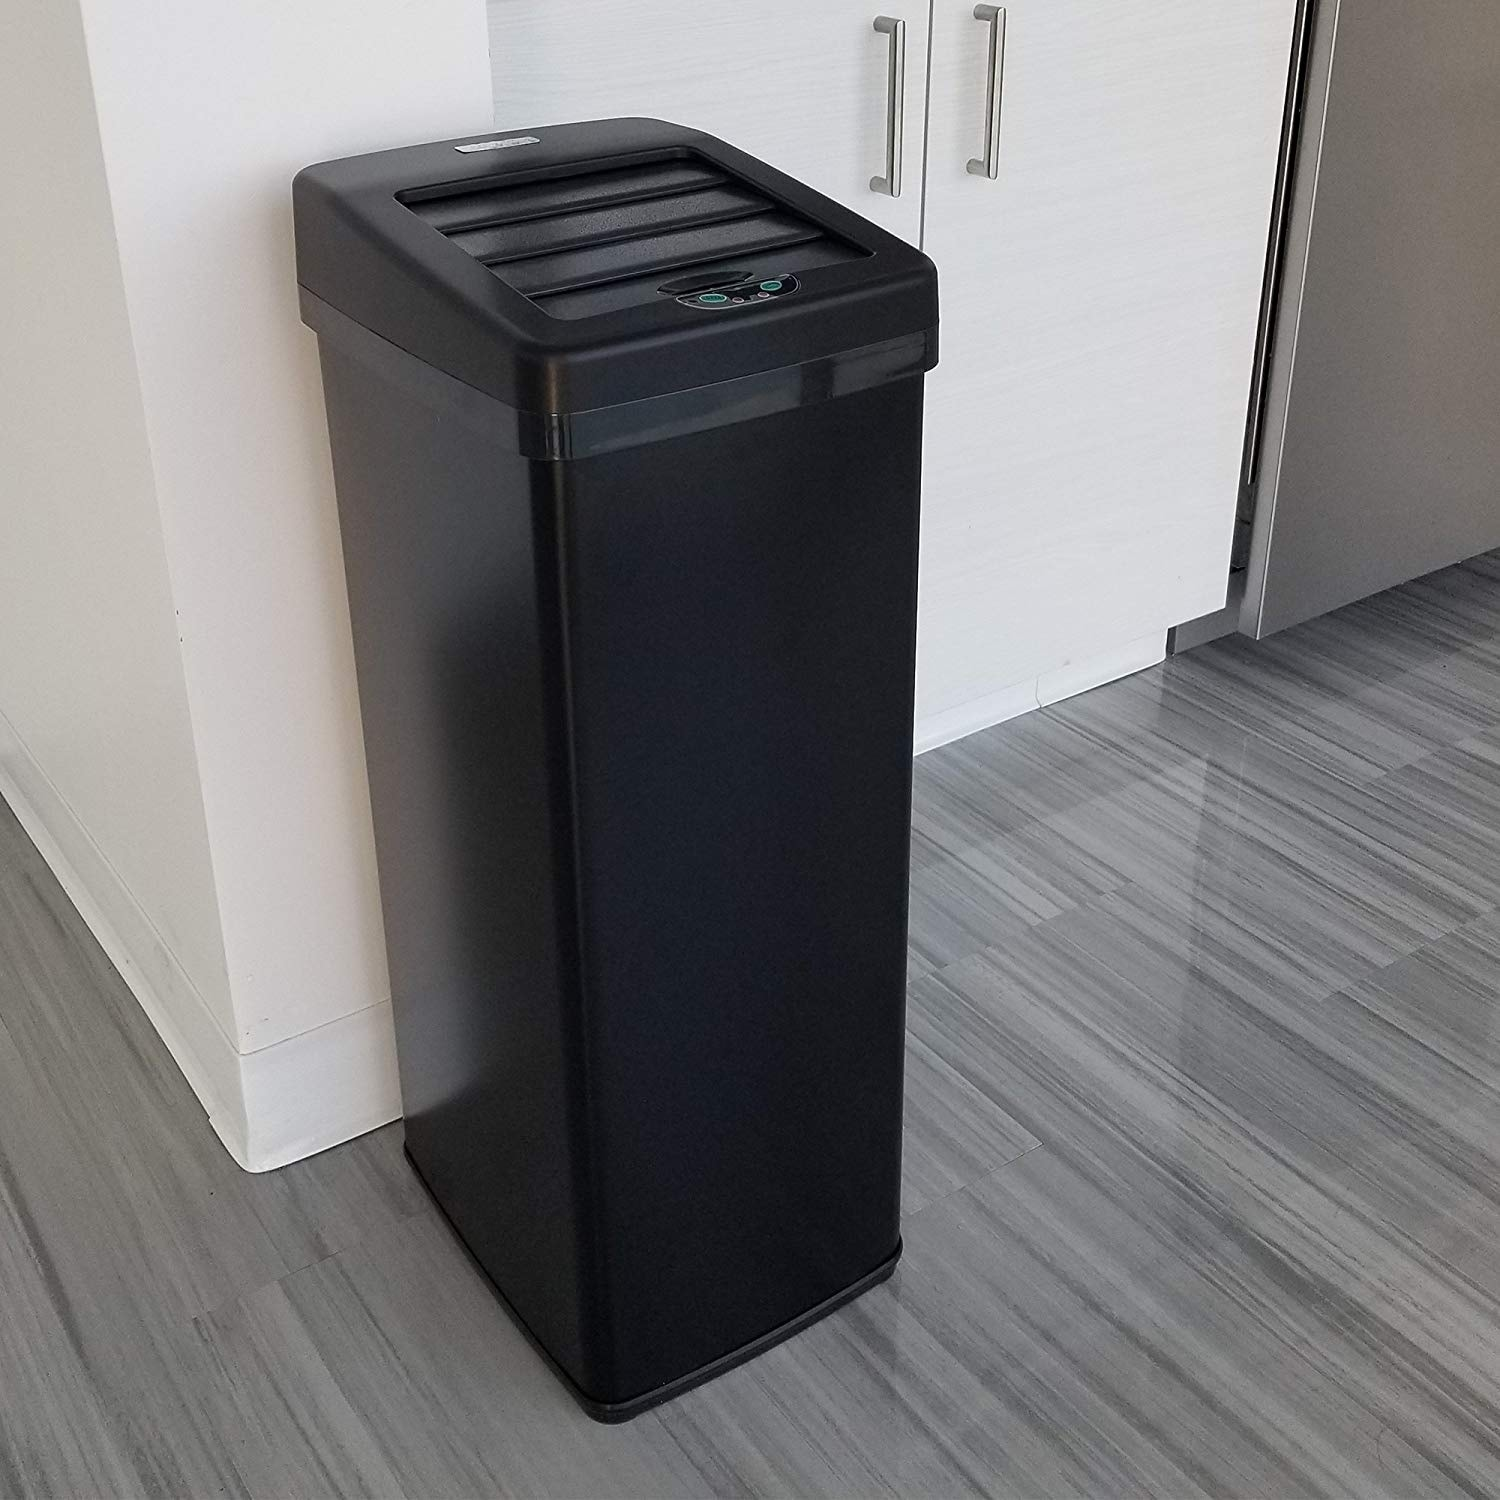 Itouchless Automatic Sensor Sliding Lid Steel Trash Can 14 Gallon 52 Liter Black Kitchen Free Shipping Today